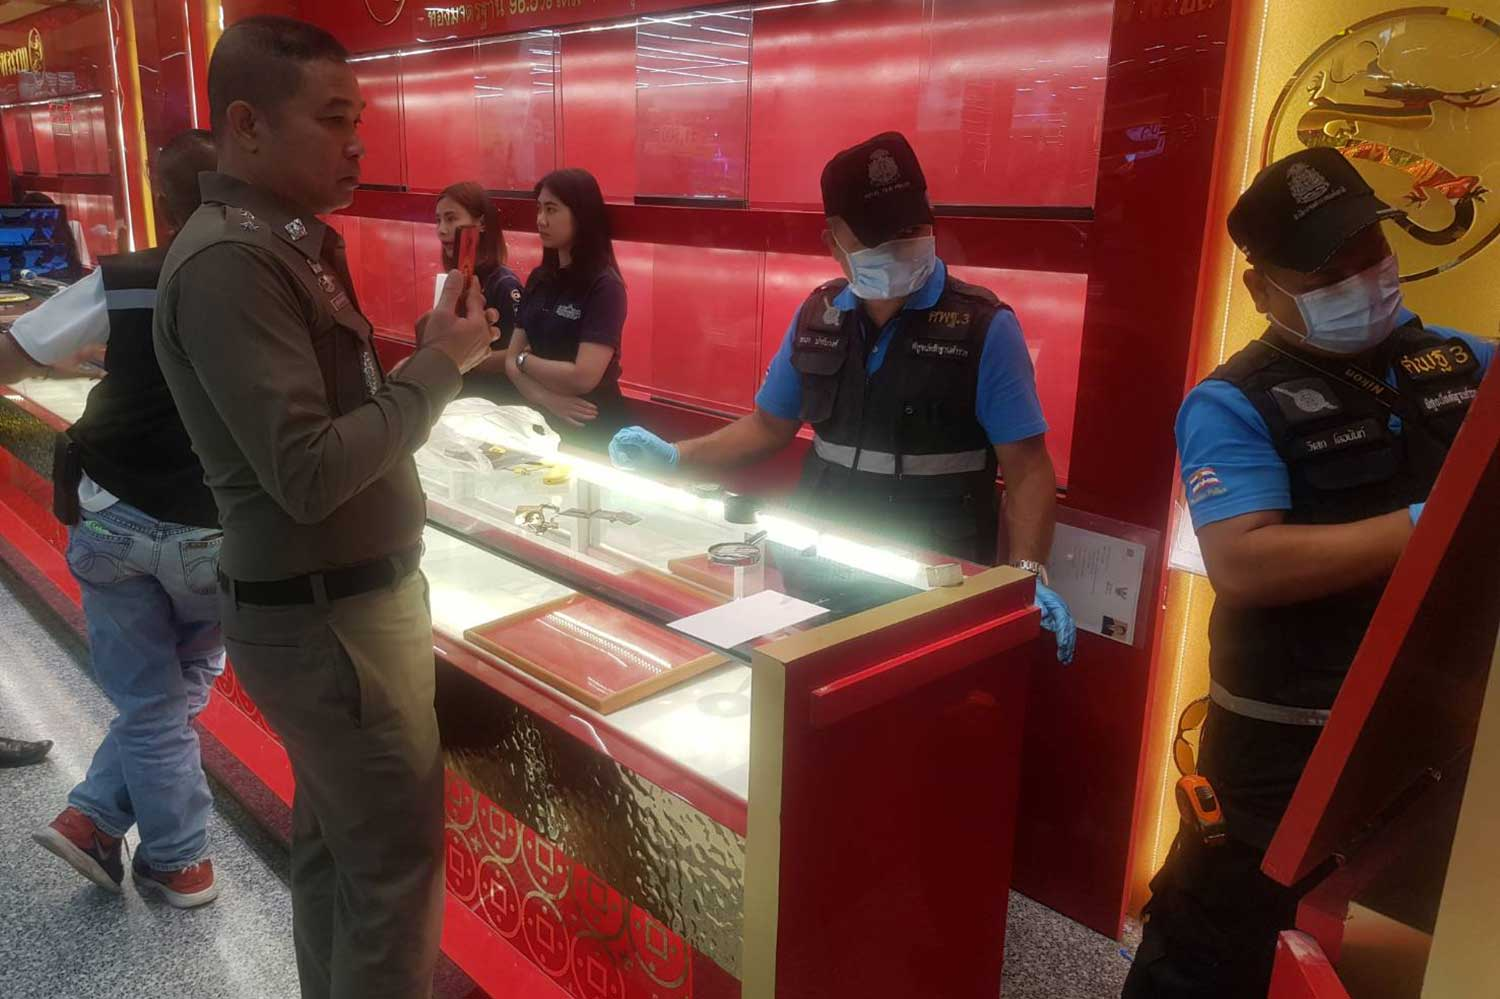 Forensic officers collect fingerprints and other evidence at a gold shop inside a department store in Muang district of Buri Ram on Saturday. (Photo by Surachai Piragsa)